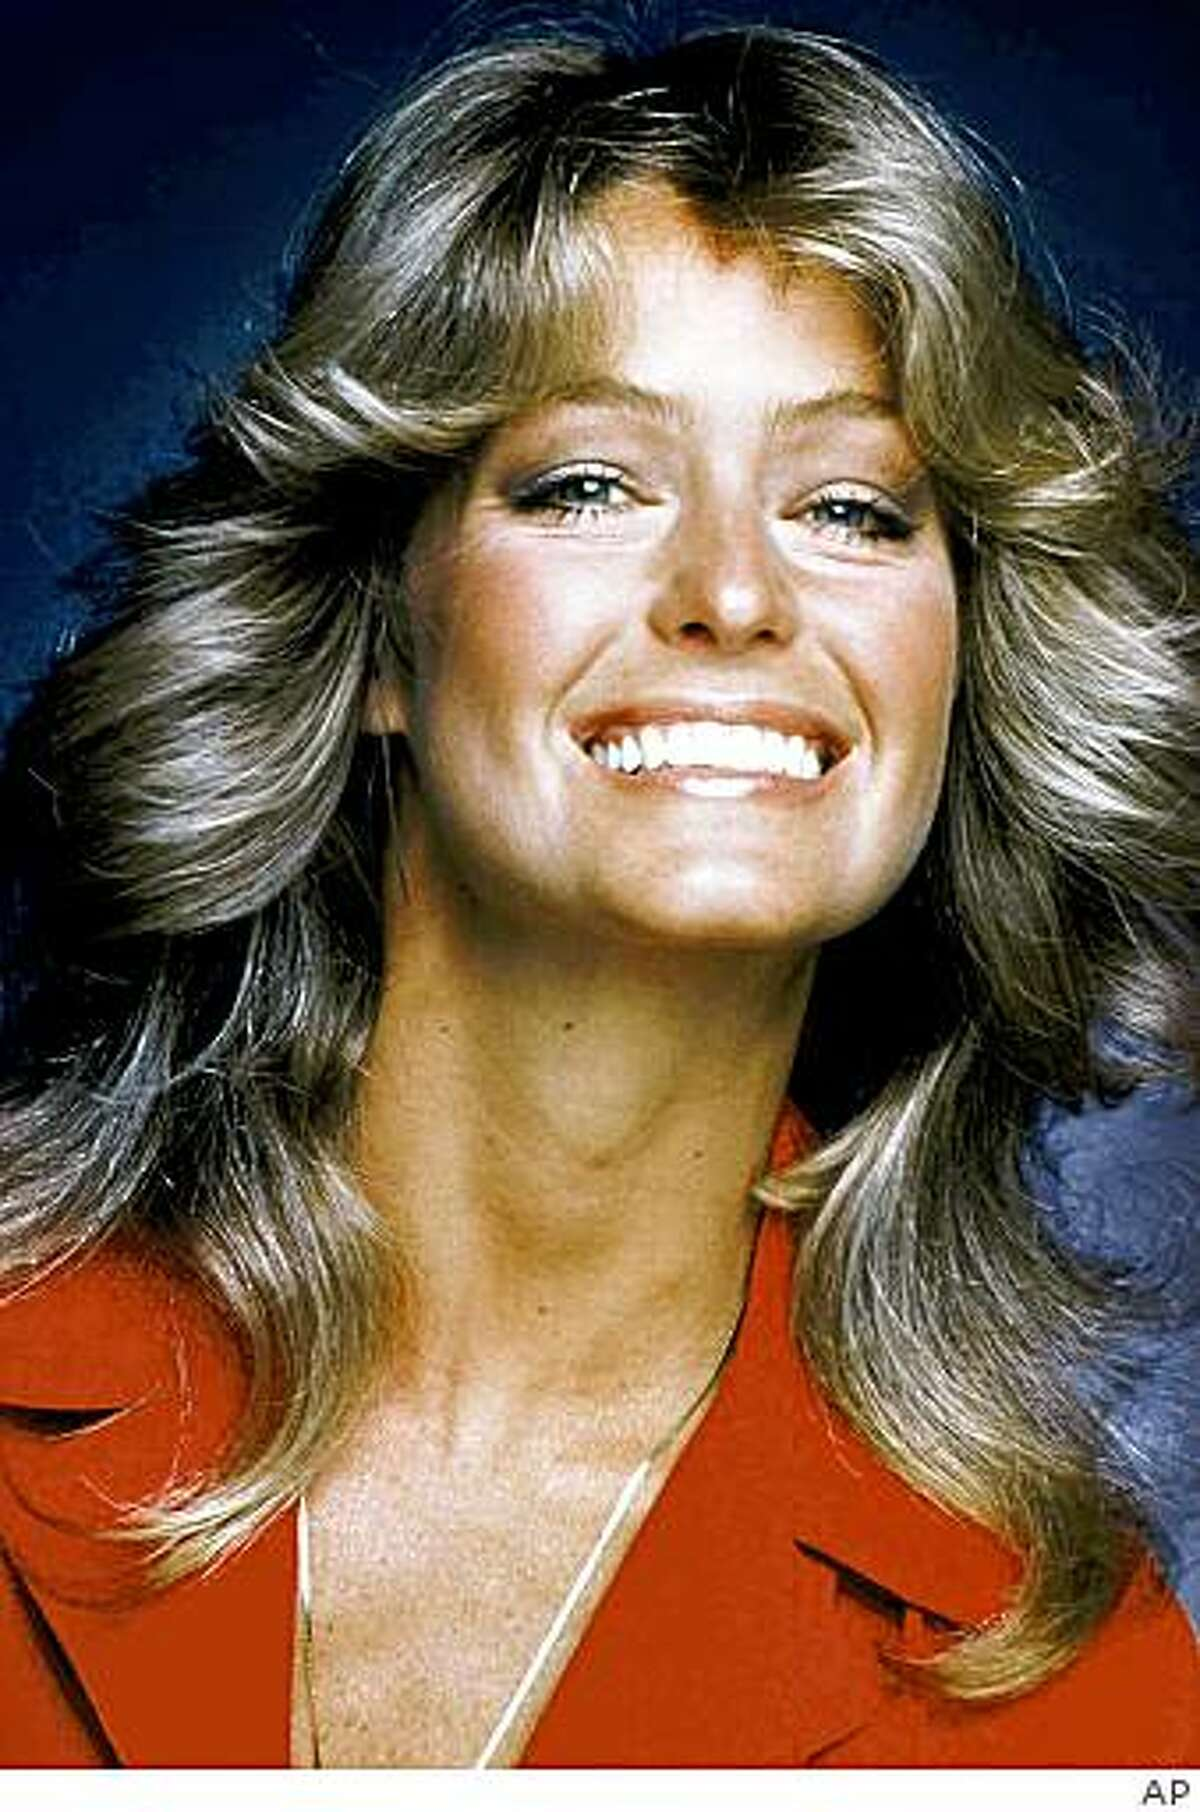 FILE - In this 1977 file photo originally released by ABC, Farrah Fawcett-Majors, from the series